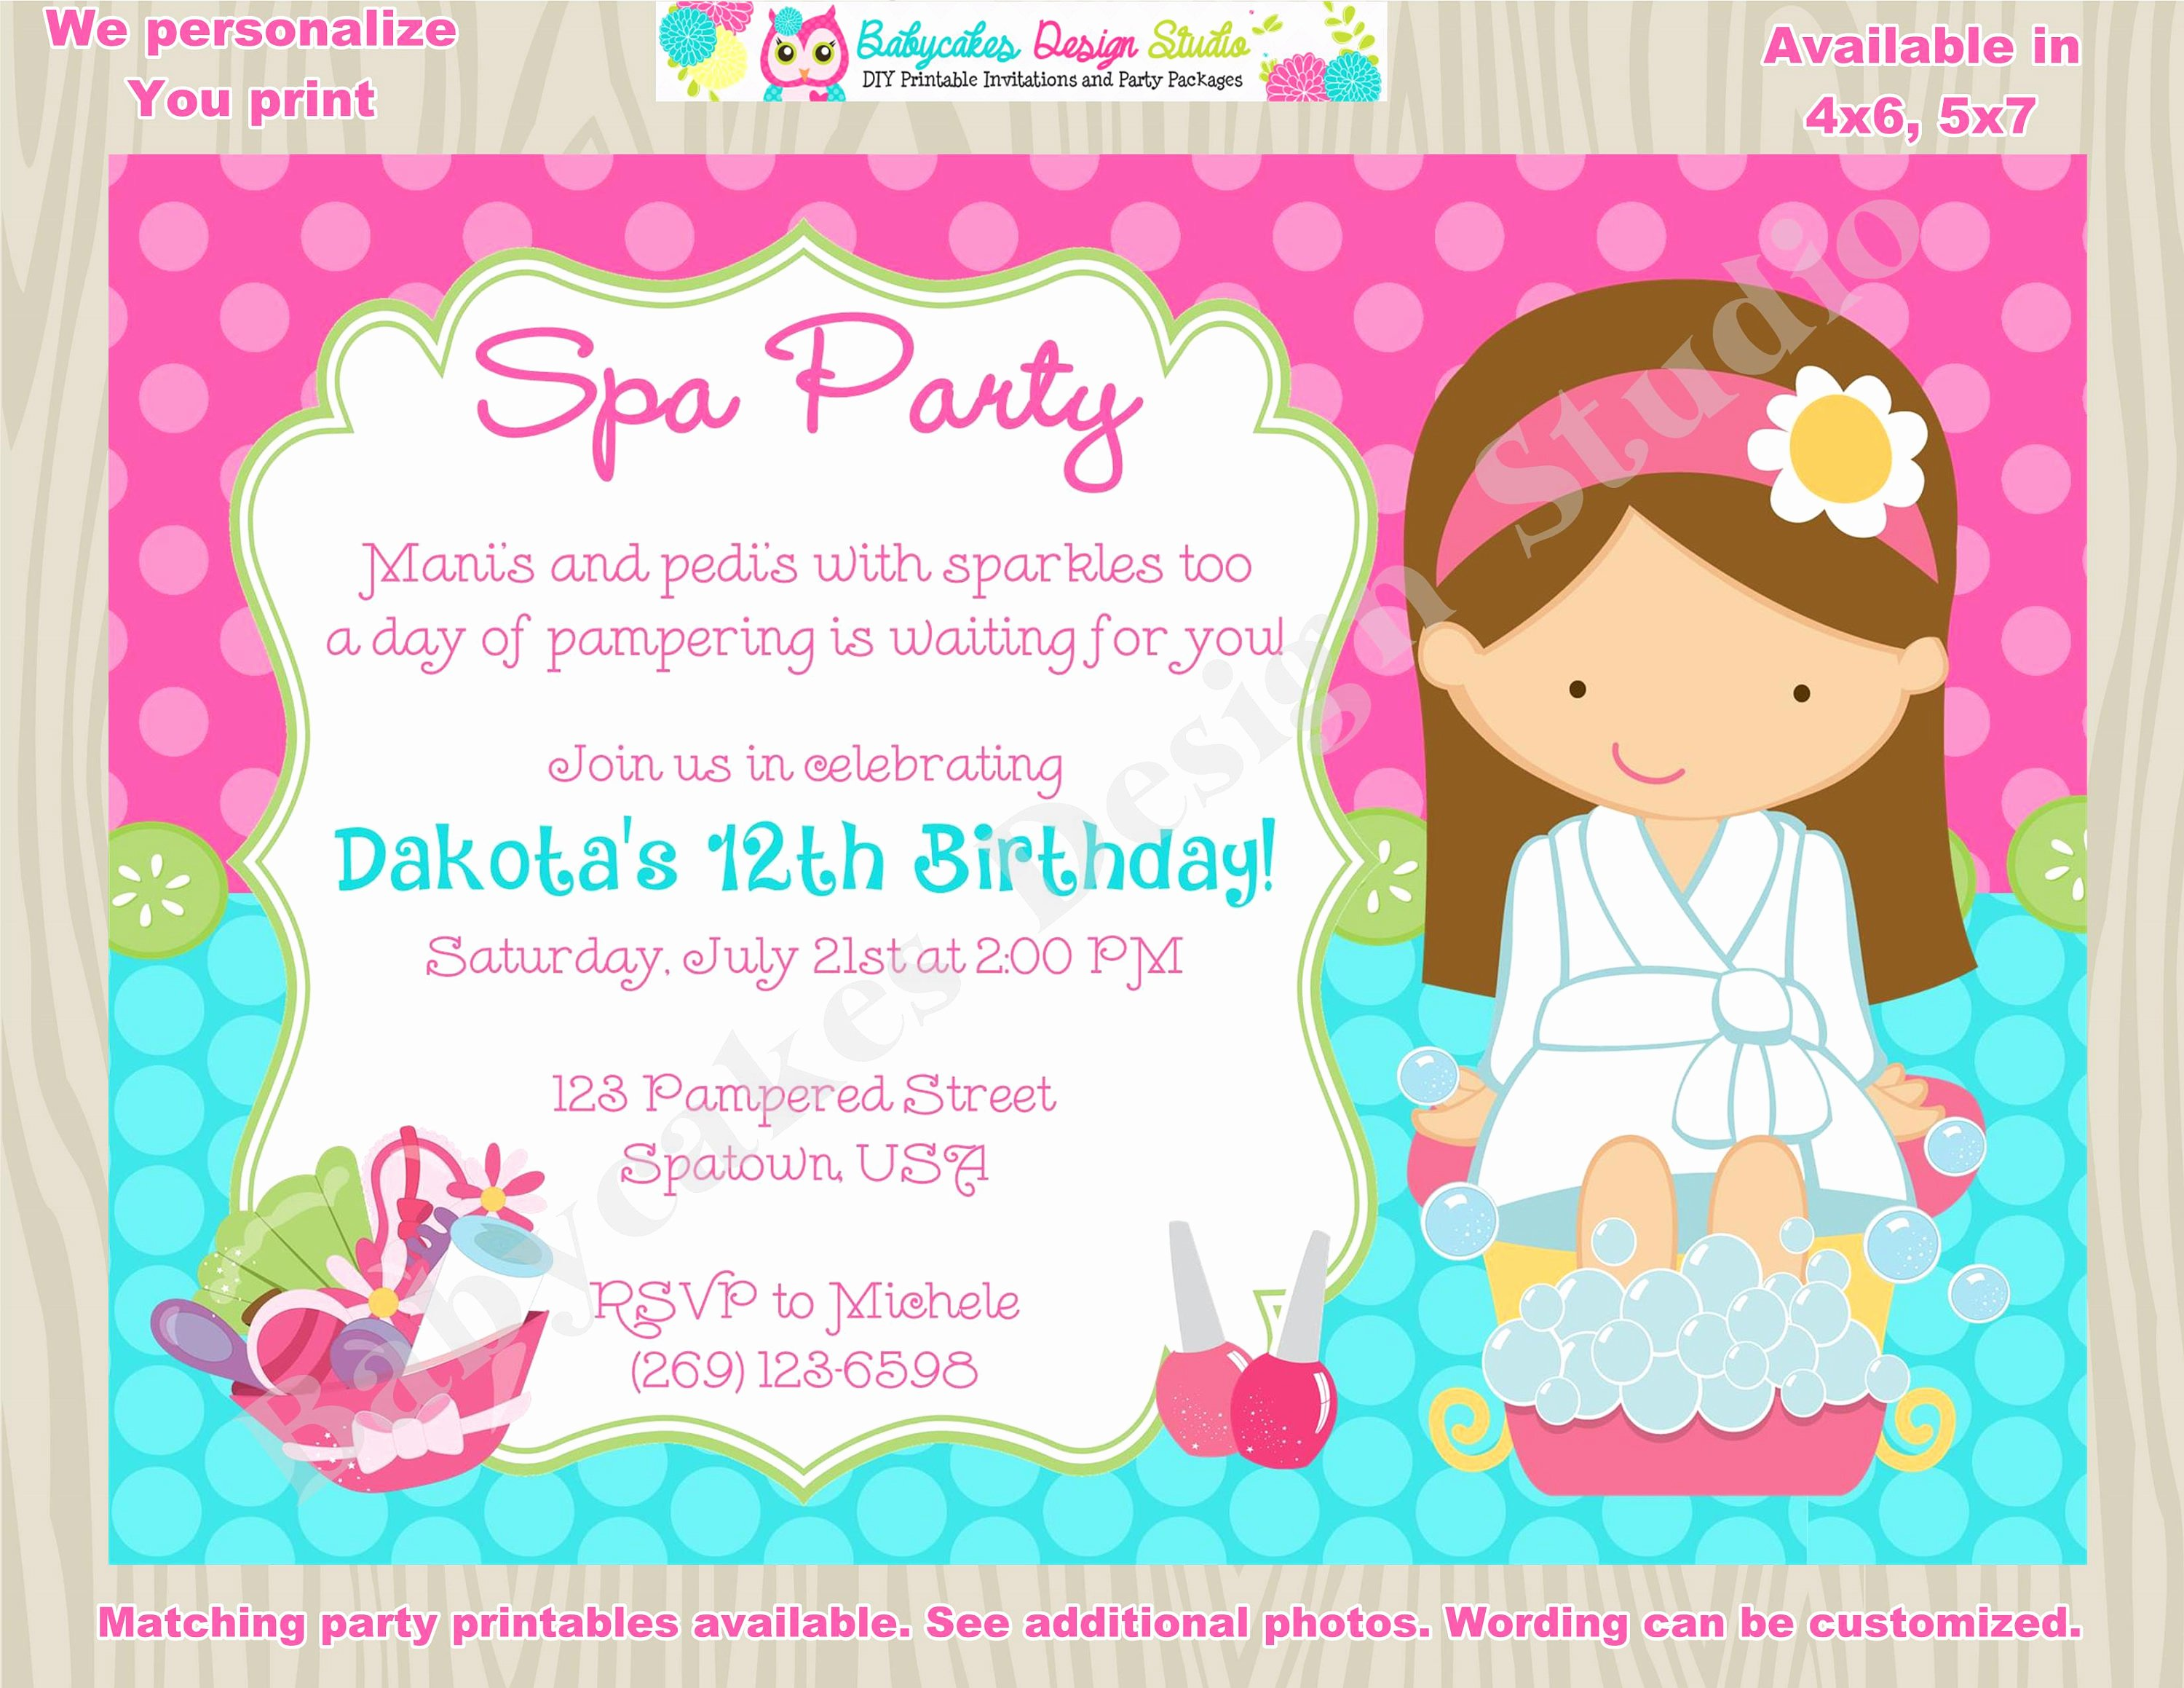 Spa Birthday Party Invitations Luxury Spa Party Invitation Spa Birthday Invitation Invite Spa Day